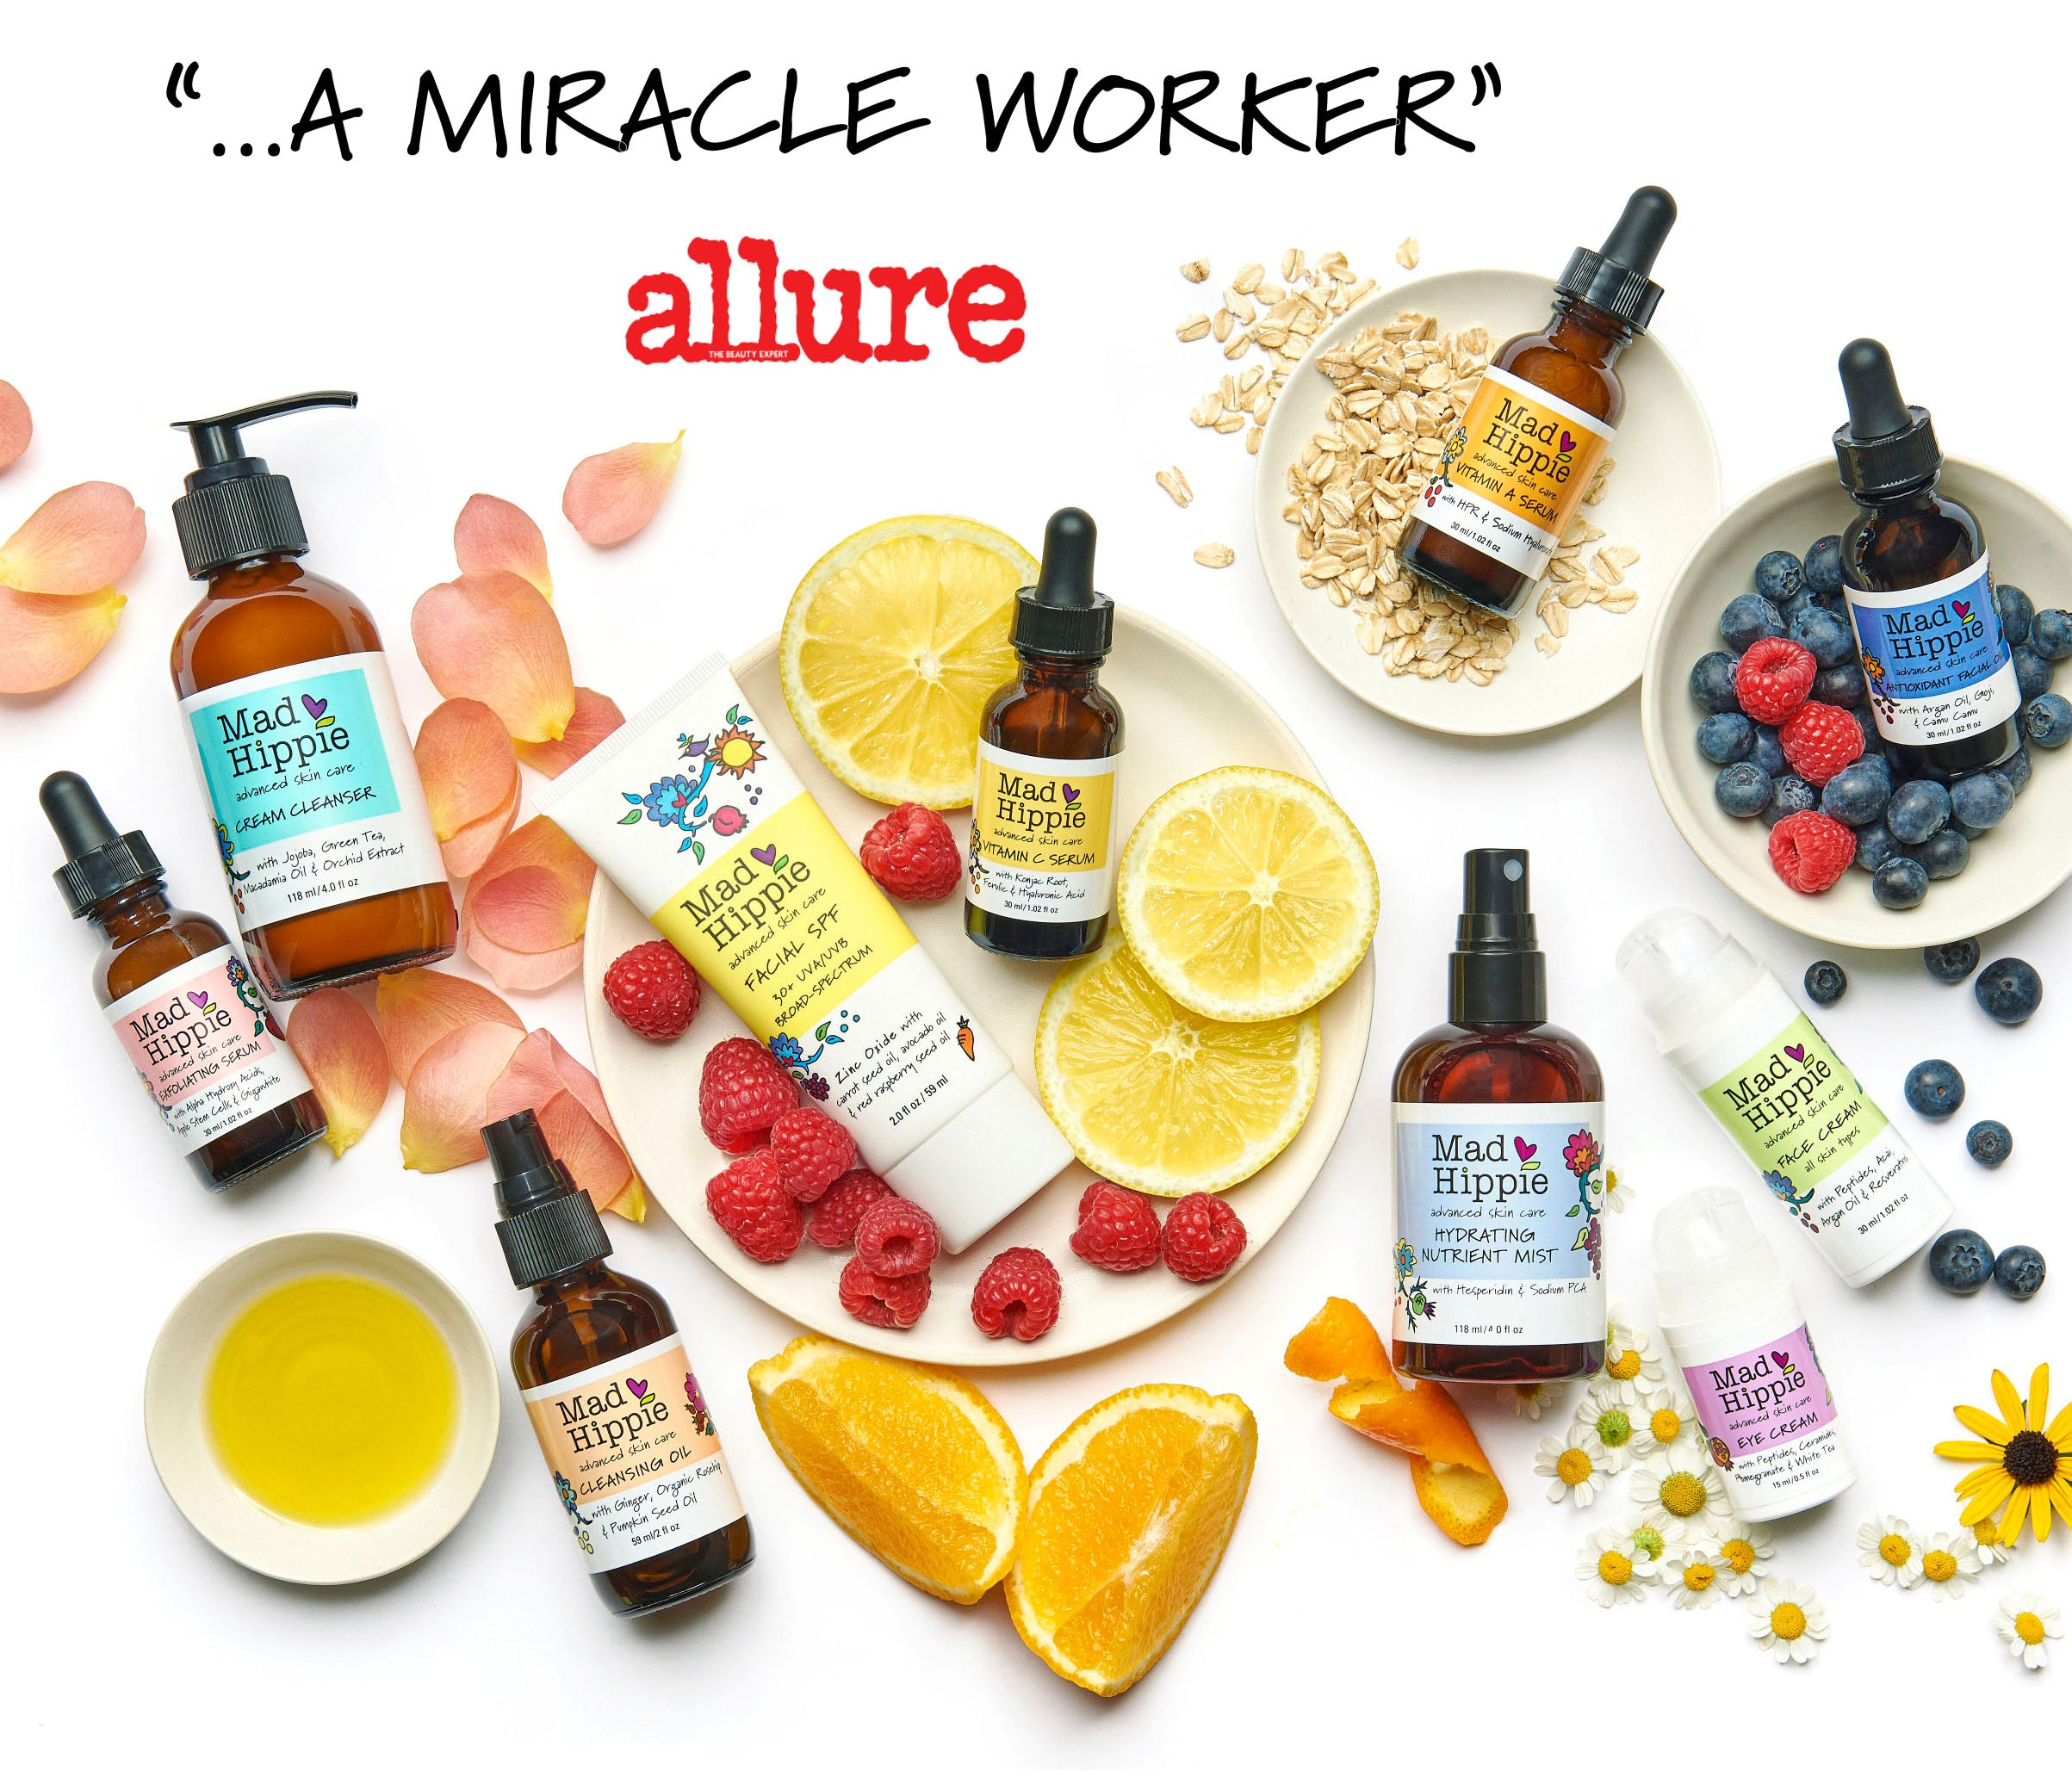 Skin care products + antioxidants